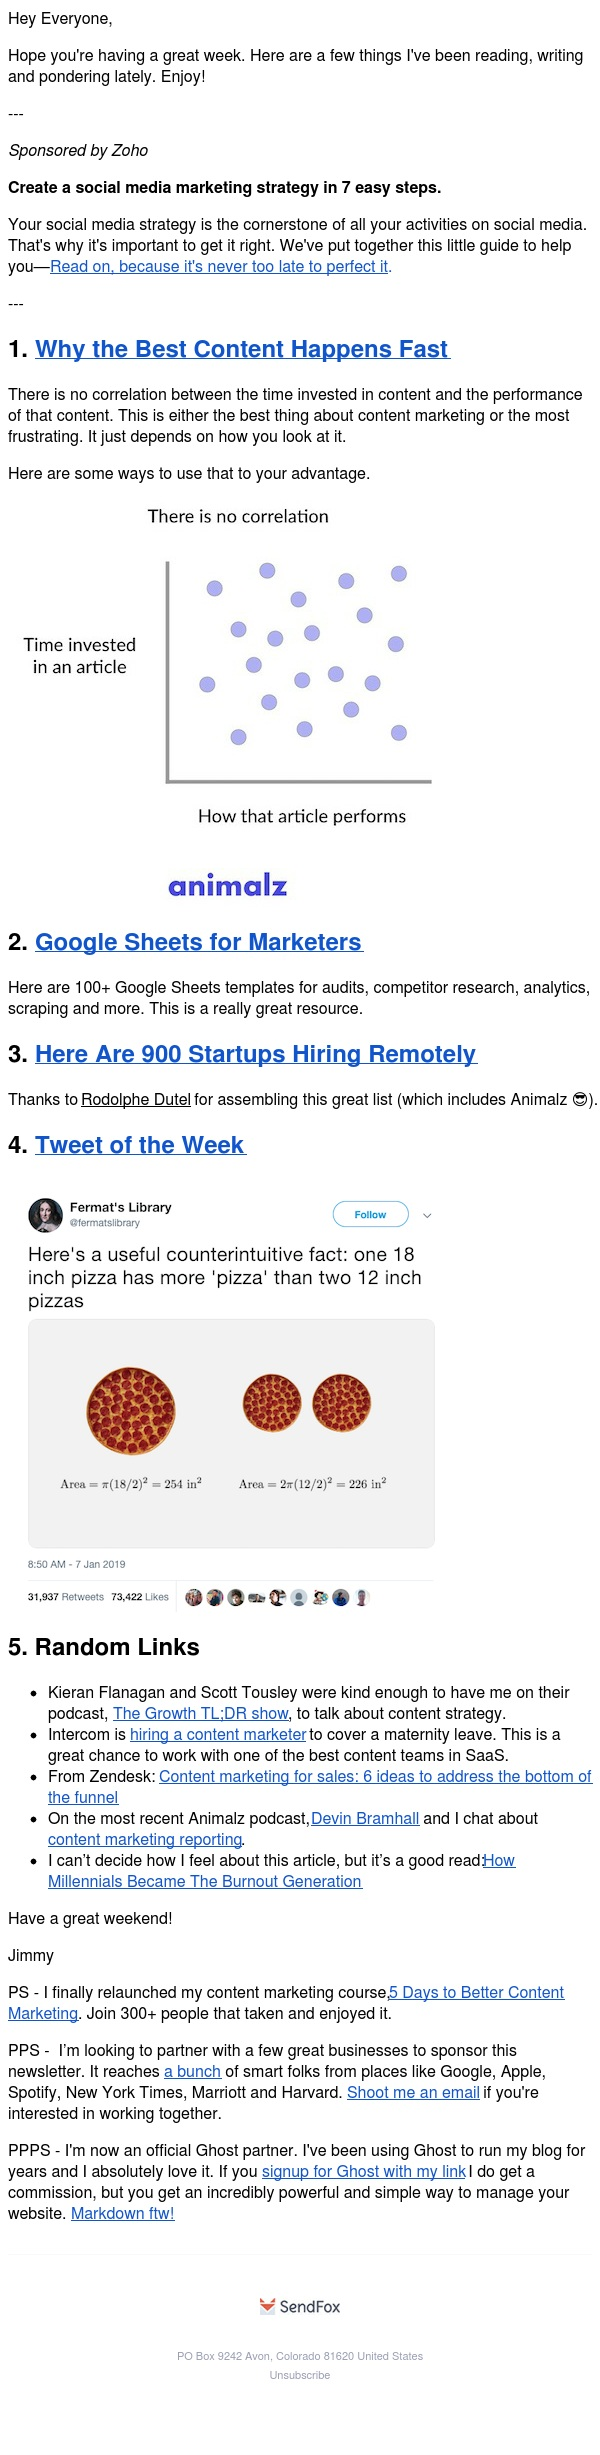 100+ Google Sheets Templates for Marketers